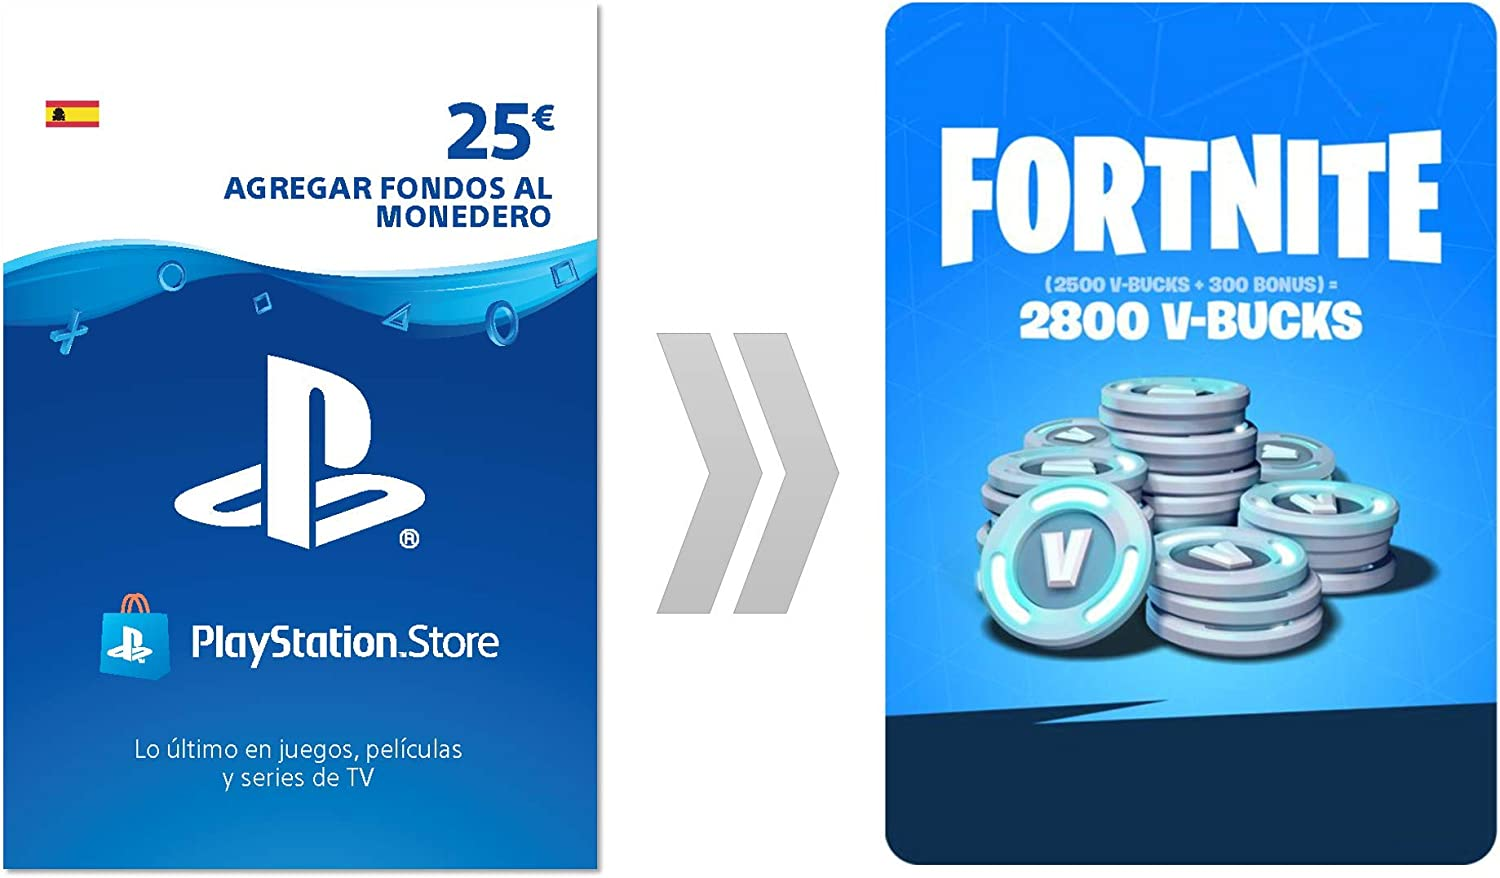 PSN Credito para Fortnite 2800 V-Bucks | Código de descarga PS4 ...